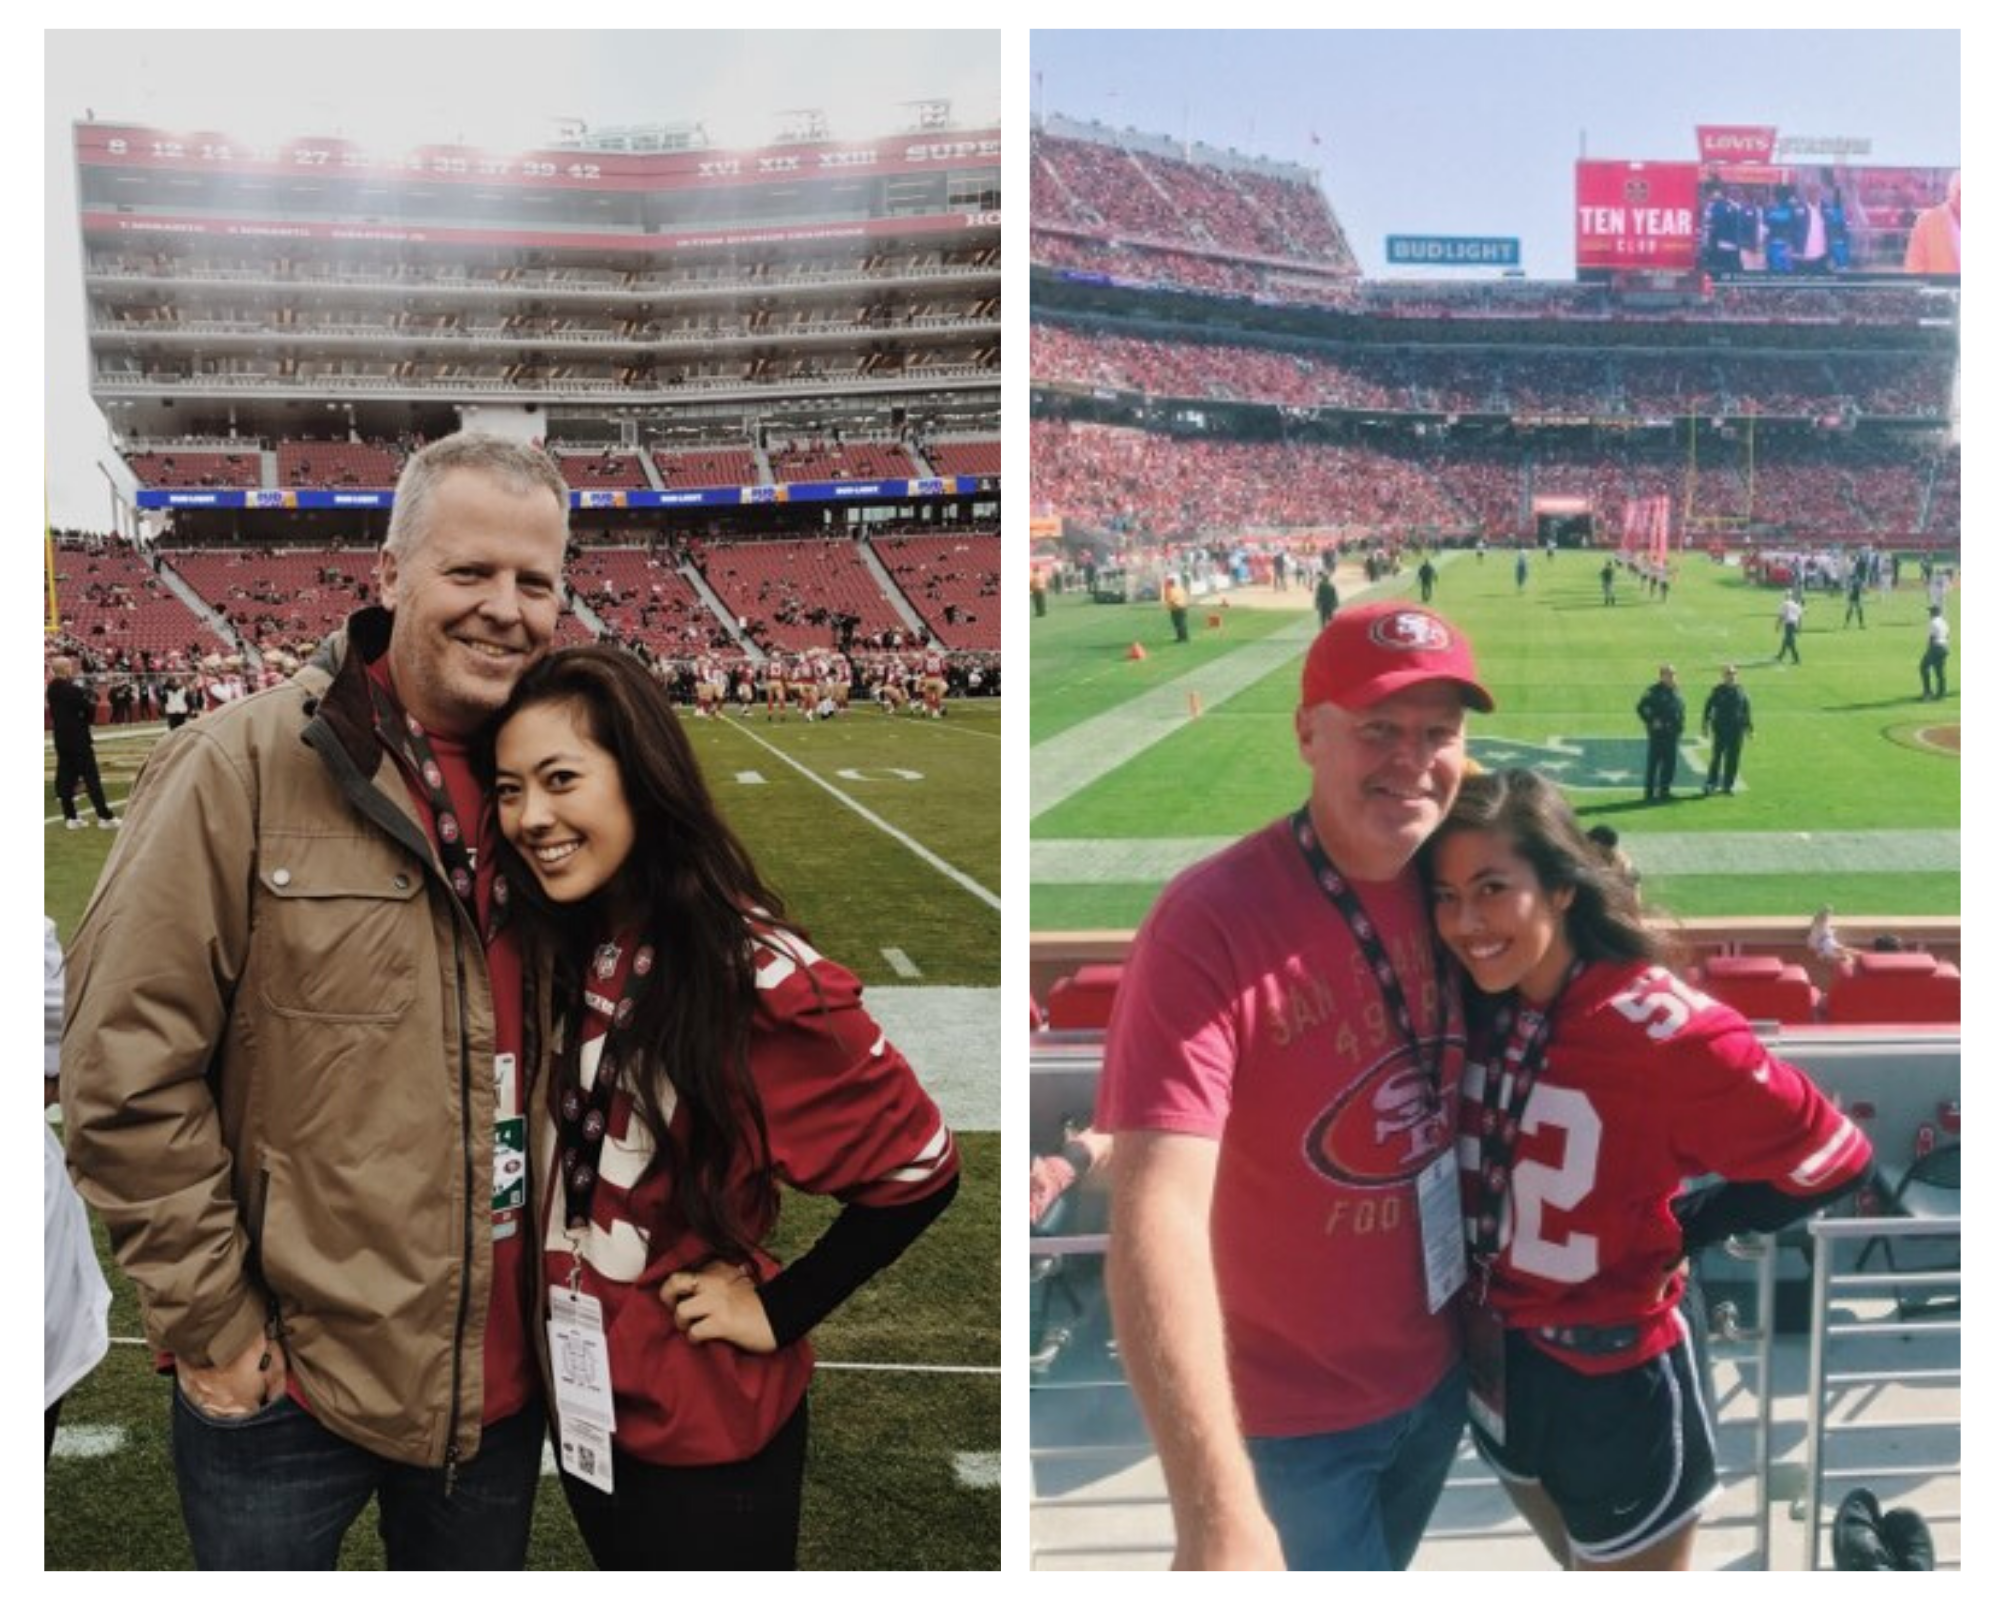 Anna and her dad at 49ers games photo 2